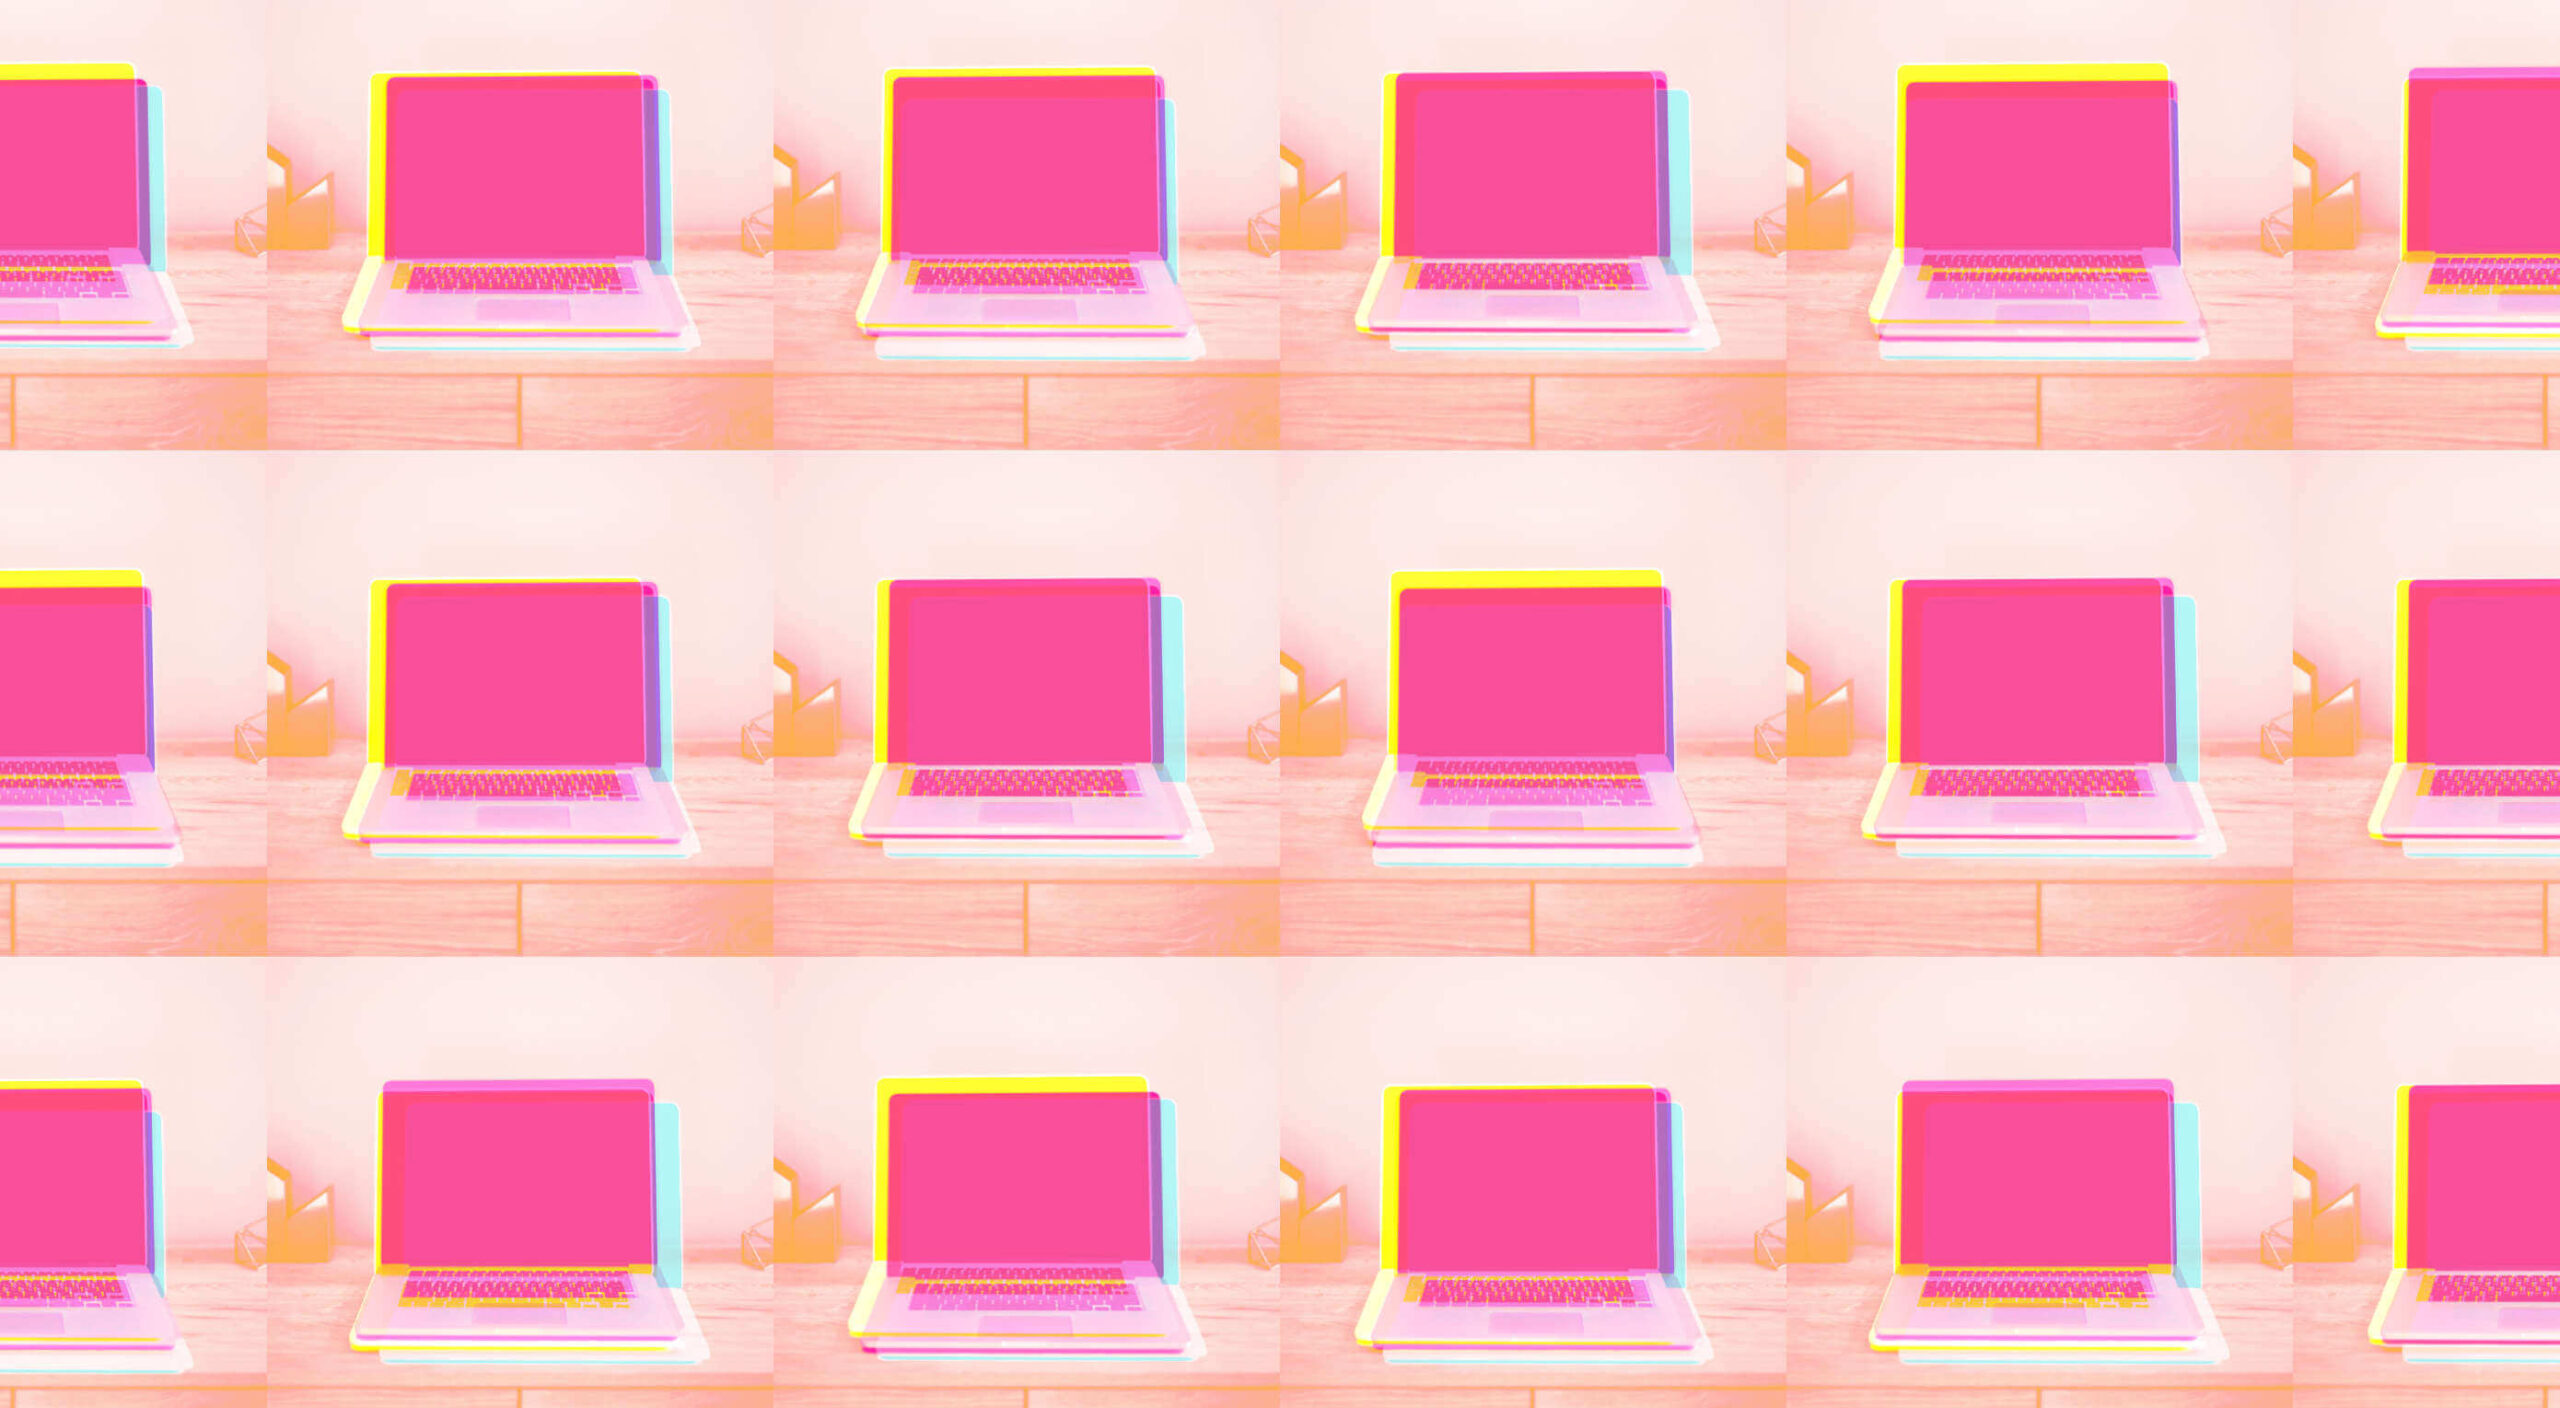 Why Do Websites Look the Same (And Should We Care)?